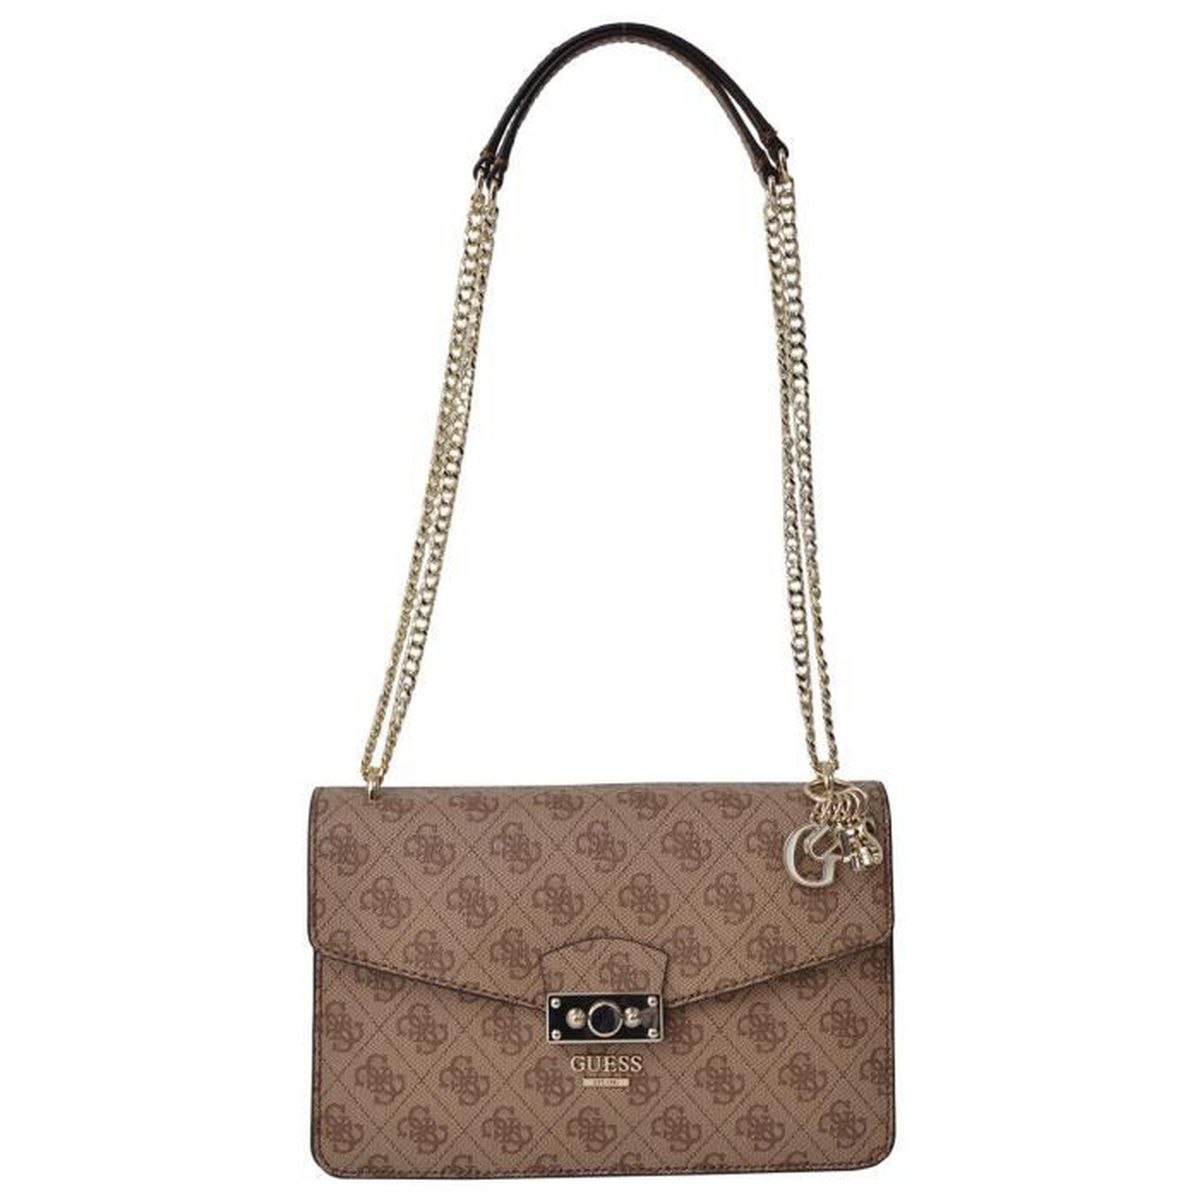 ee9a8c9760 Sac bandoulière Guess Arianna Marron brown - Achat / Vente besace ...